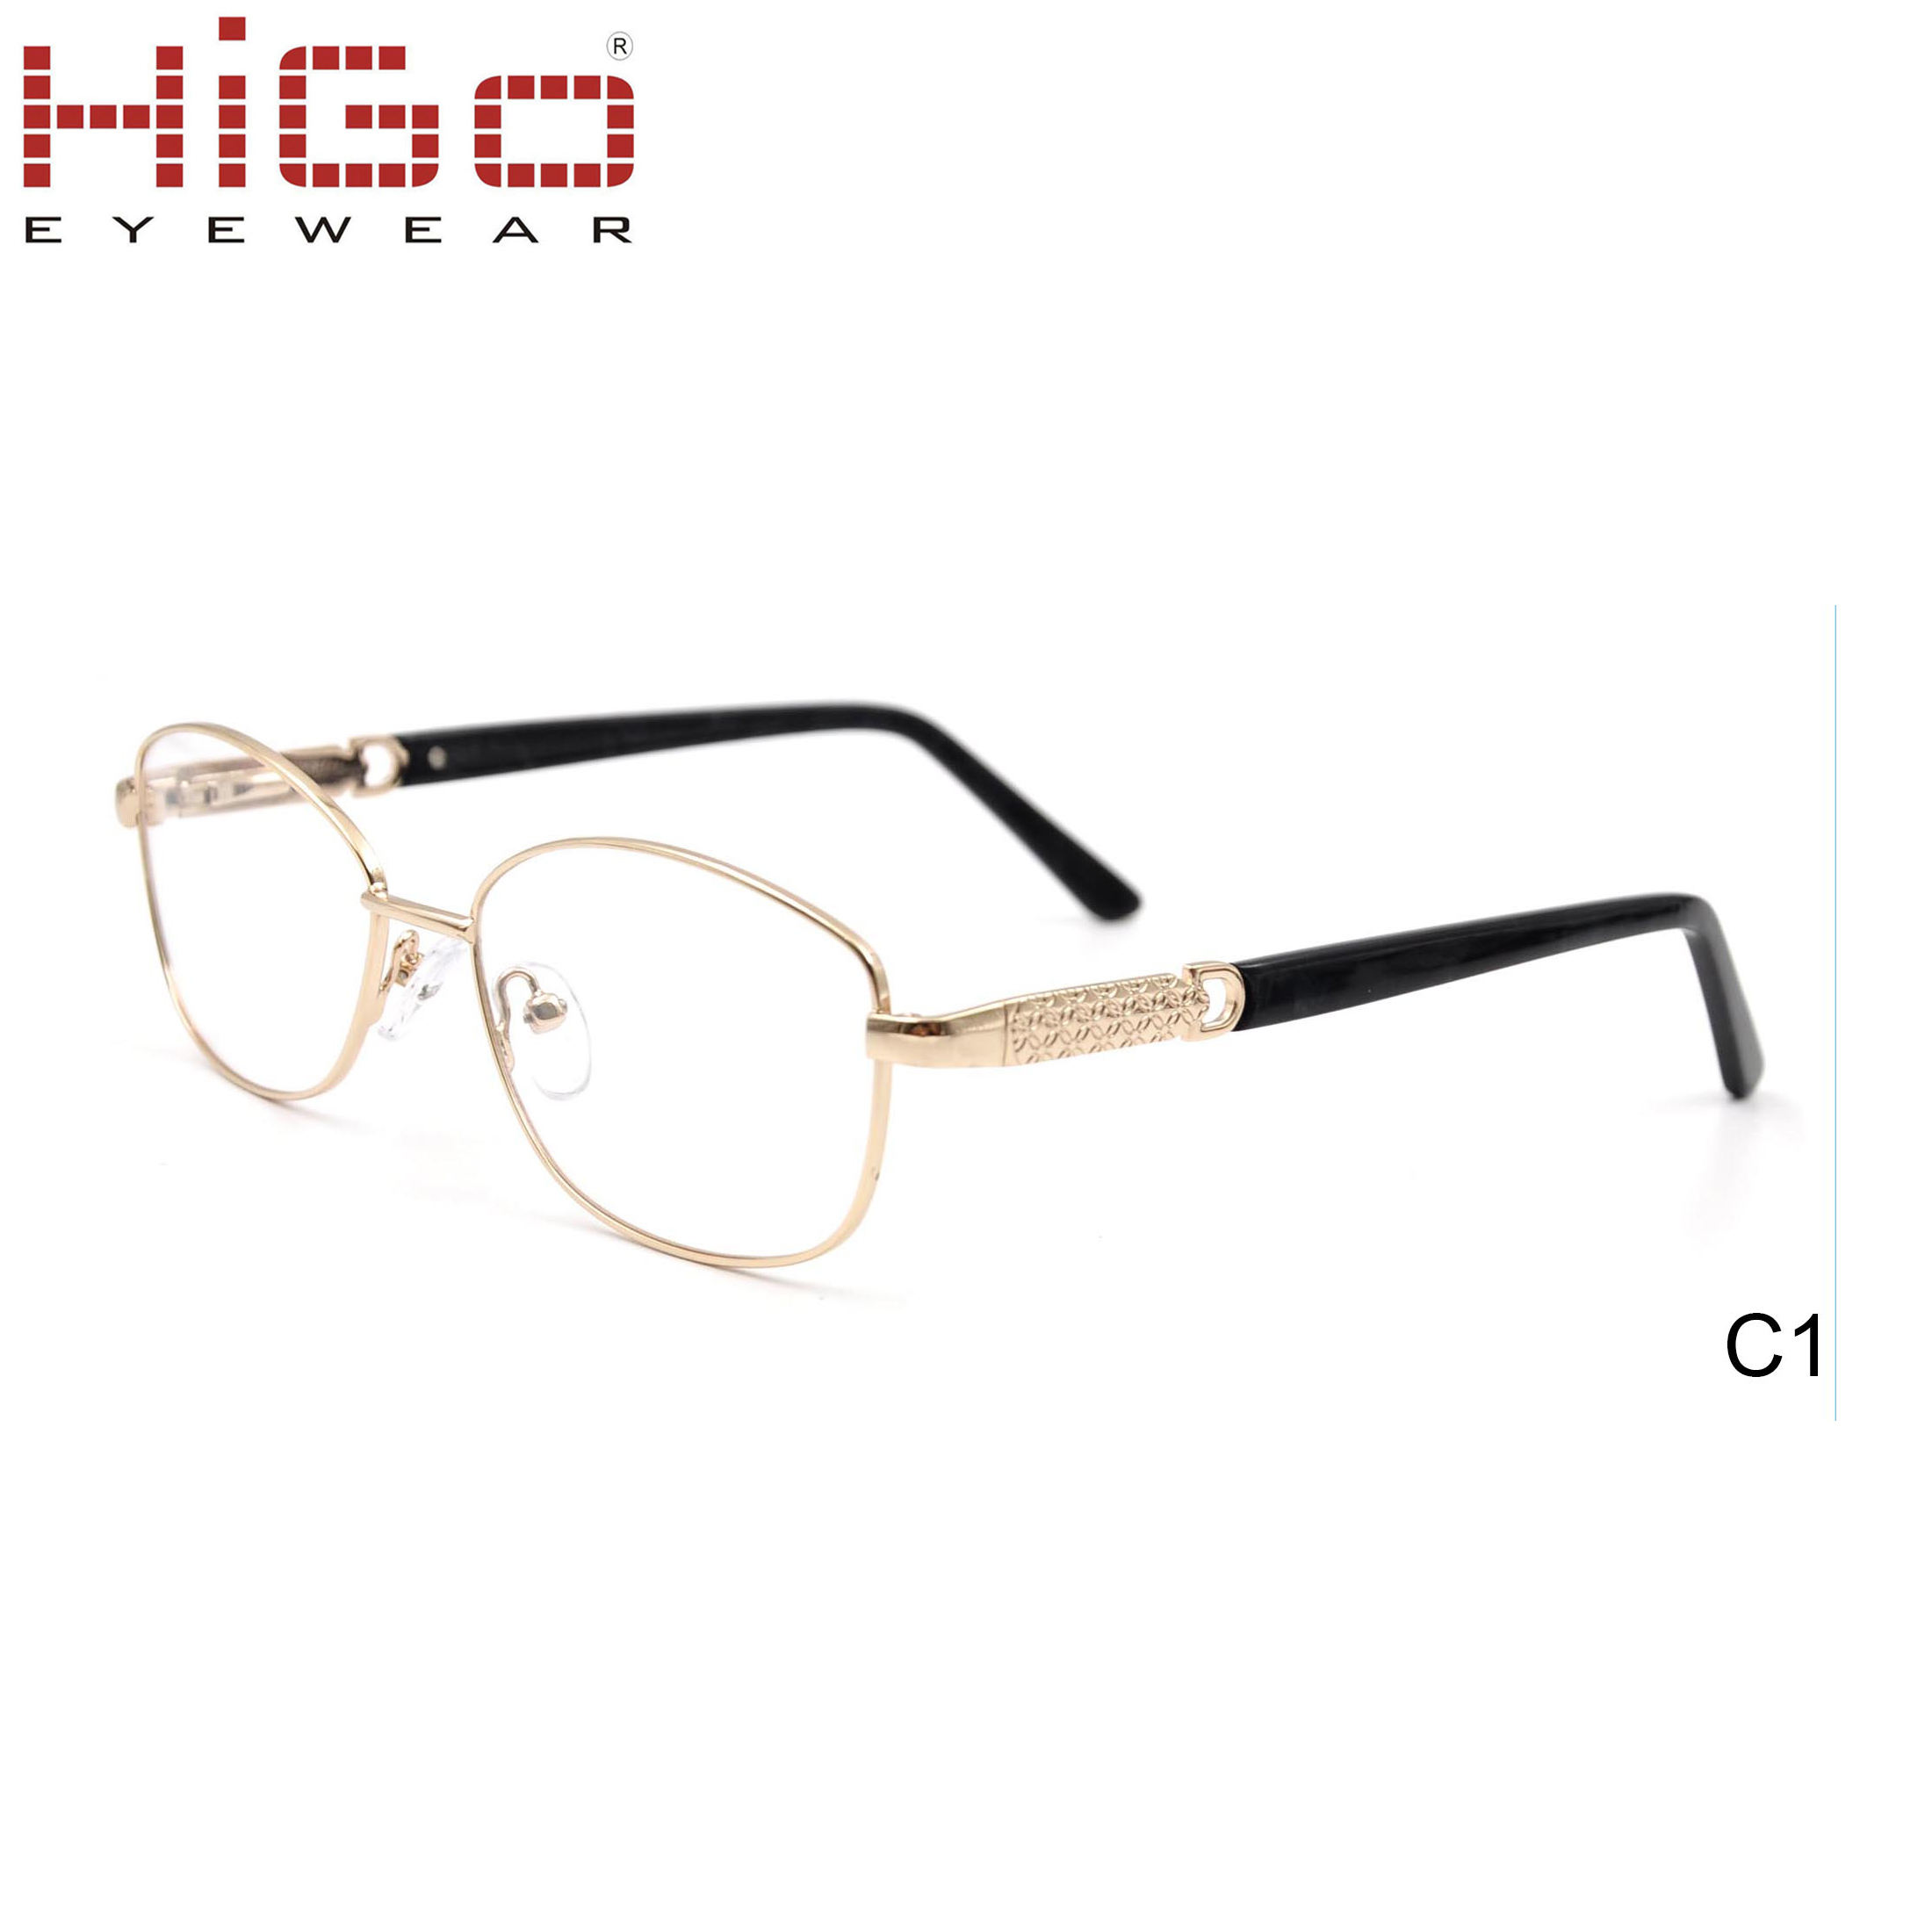 Most Popular Classical Gold Metal Spring Hinge Optical Eyewear Frame